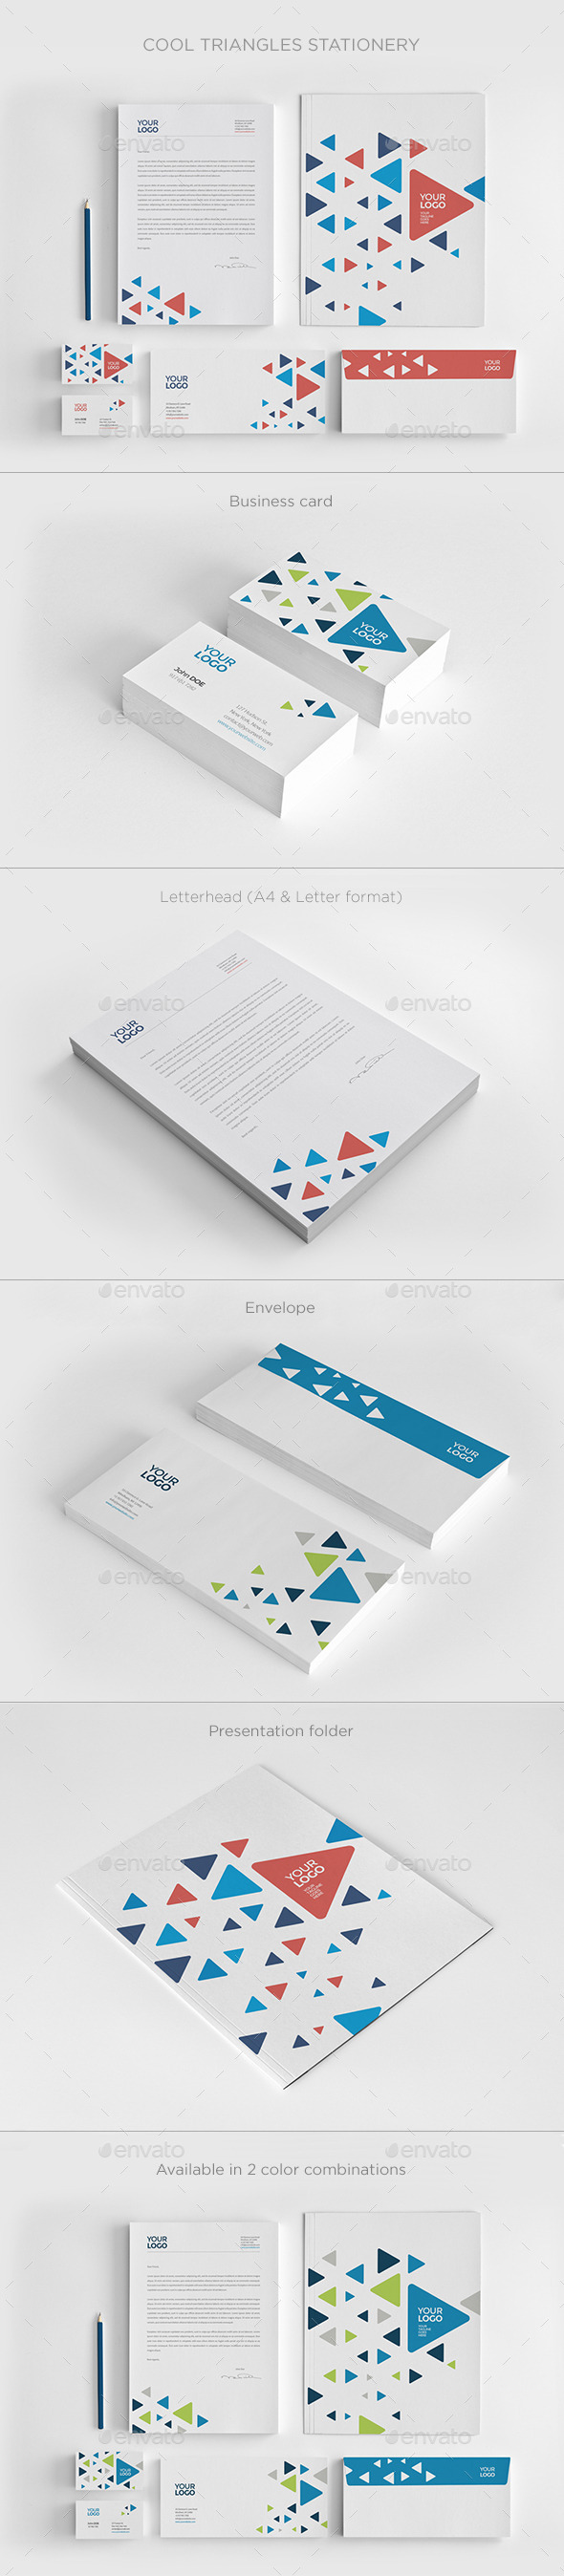 Cool Triangles Stationery - Stationery Print Templates